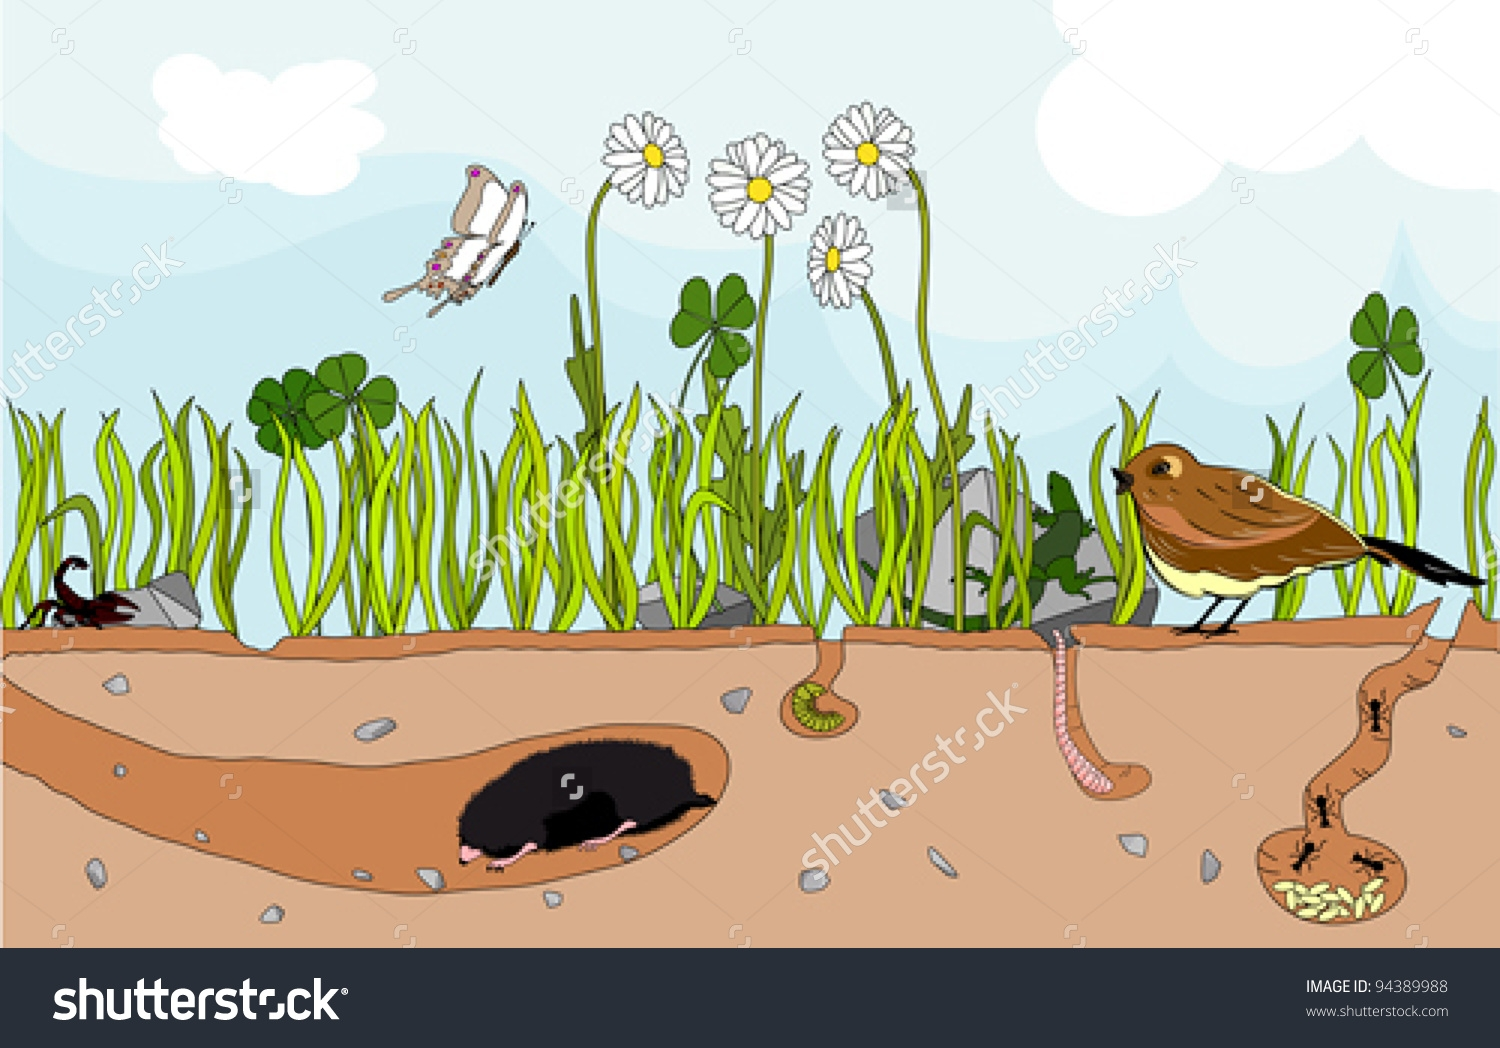 Underground animals clipart.